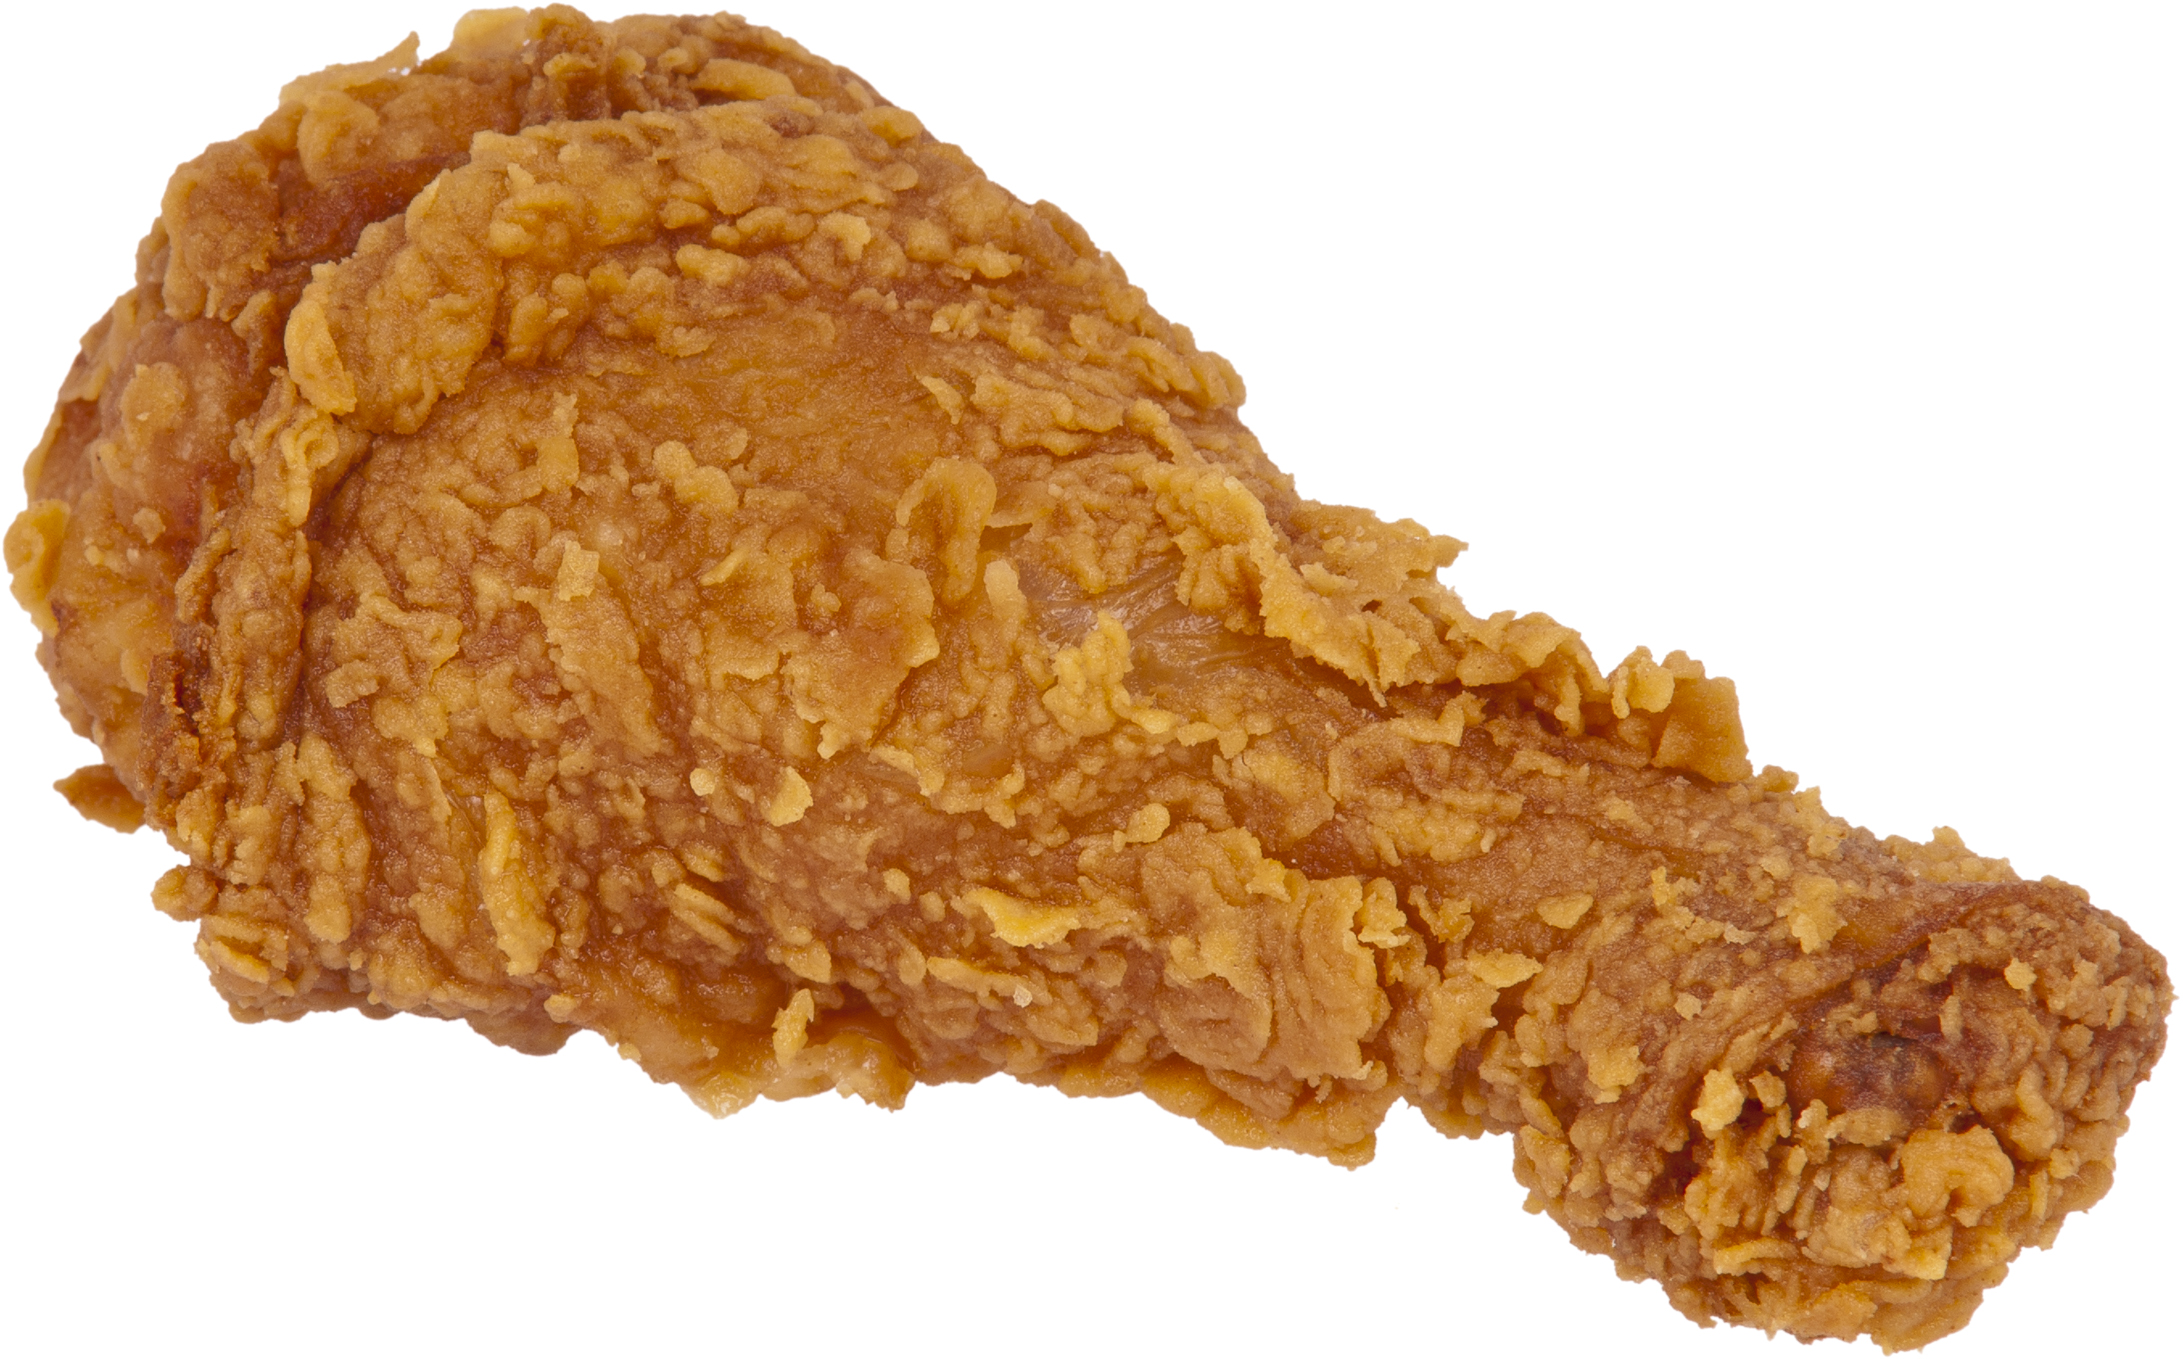 Fried-Chicken-Leg.jpg